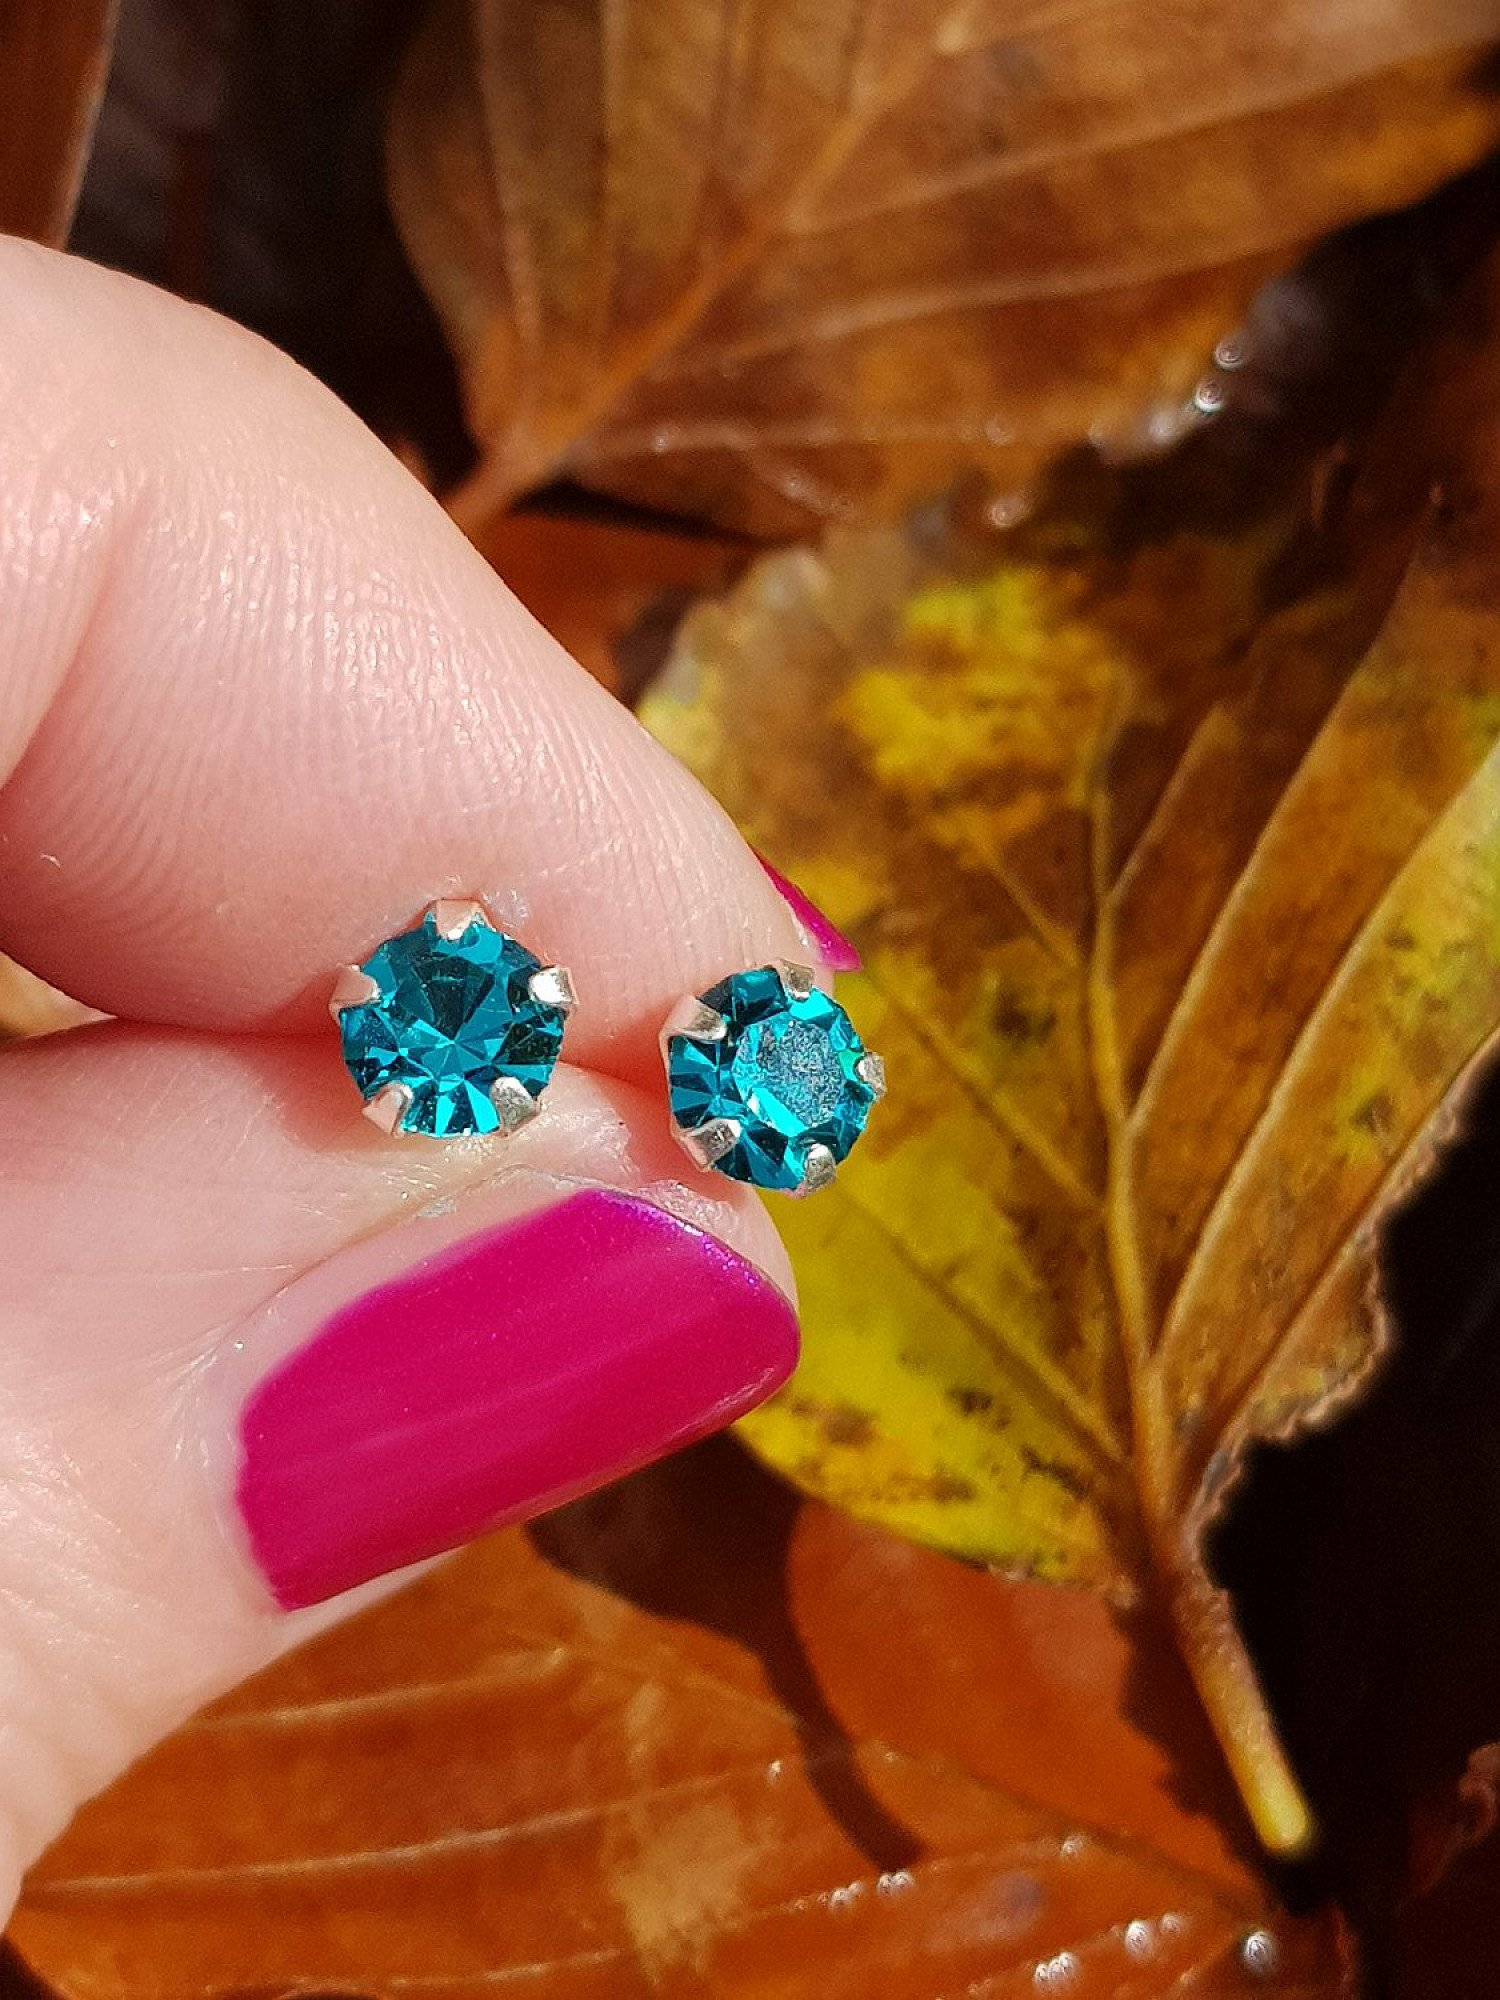 Silver, round blue zircon stud earrings - 5mm - 0.45g - ONLY £6.00 - Free UK delivery